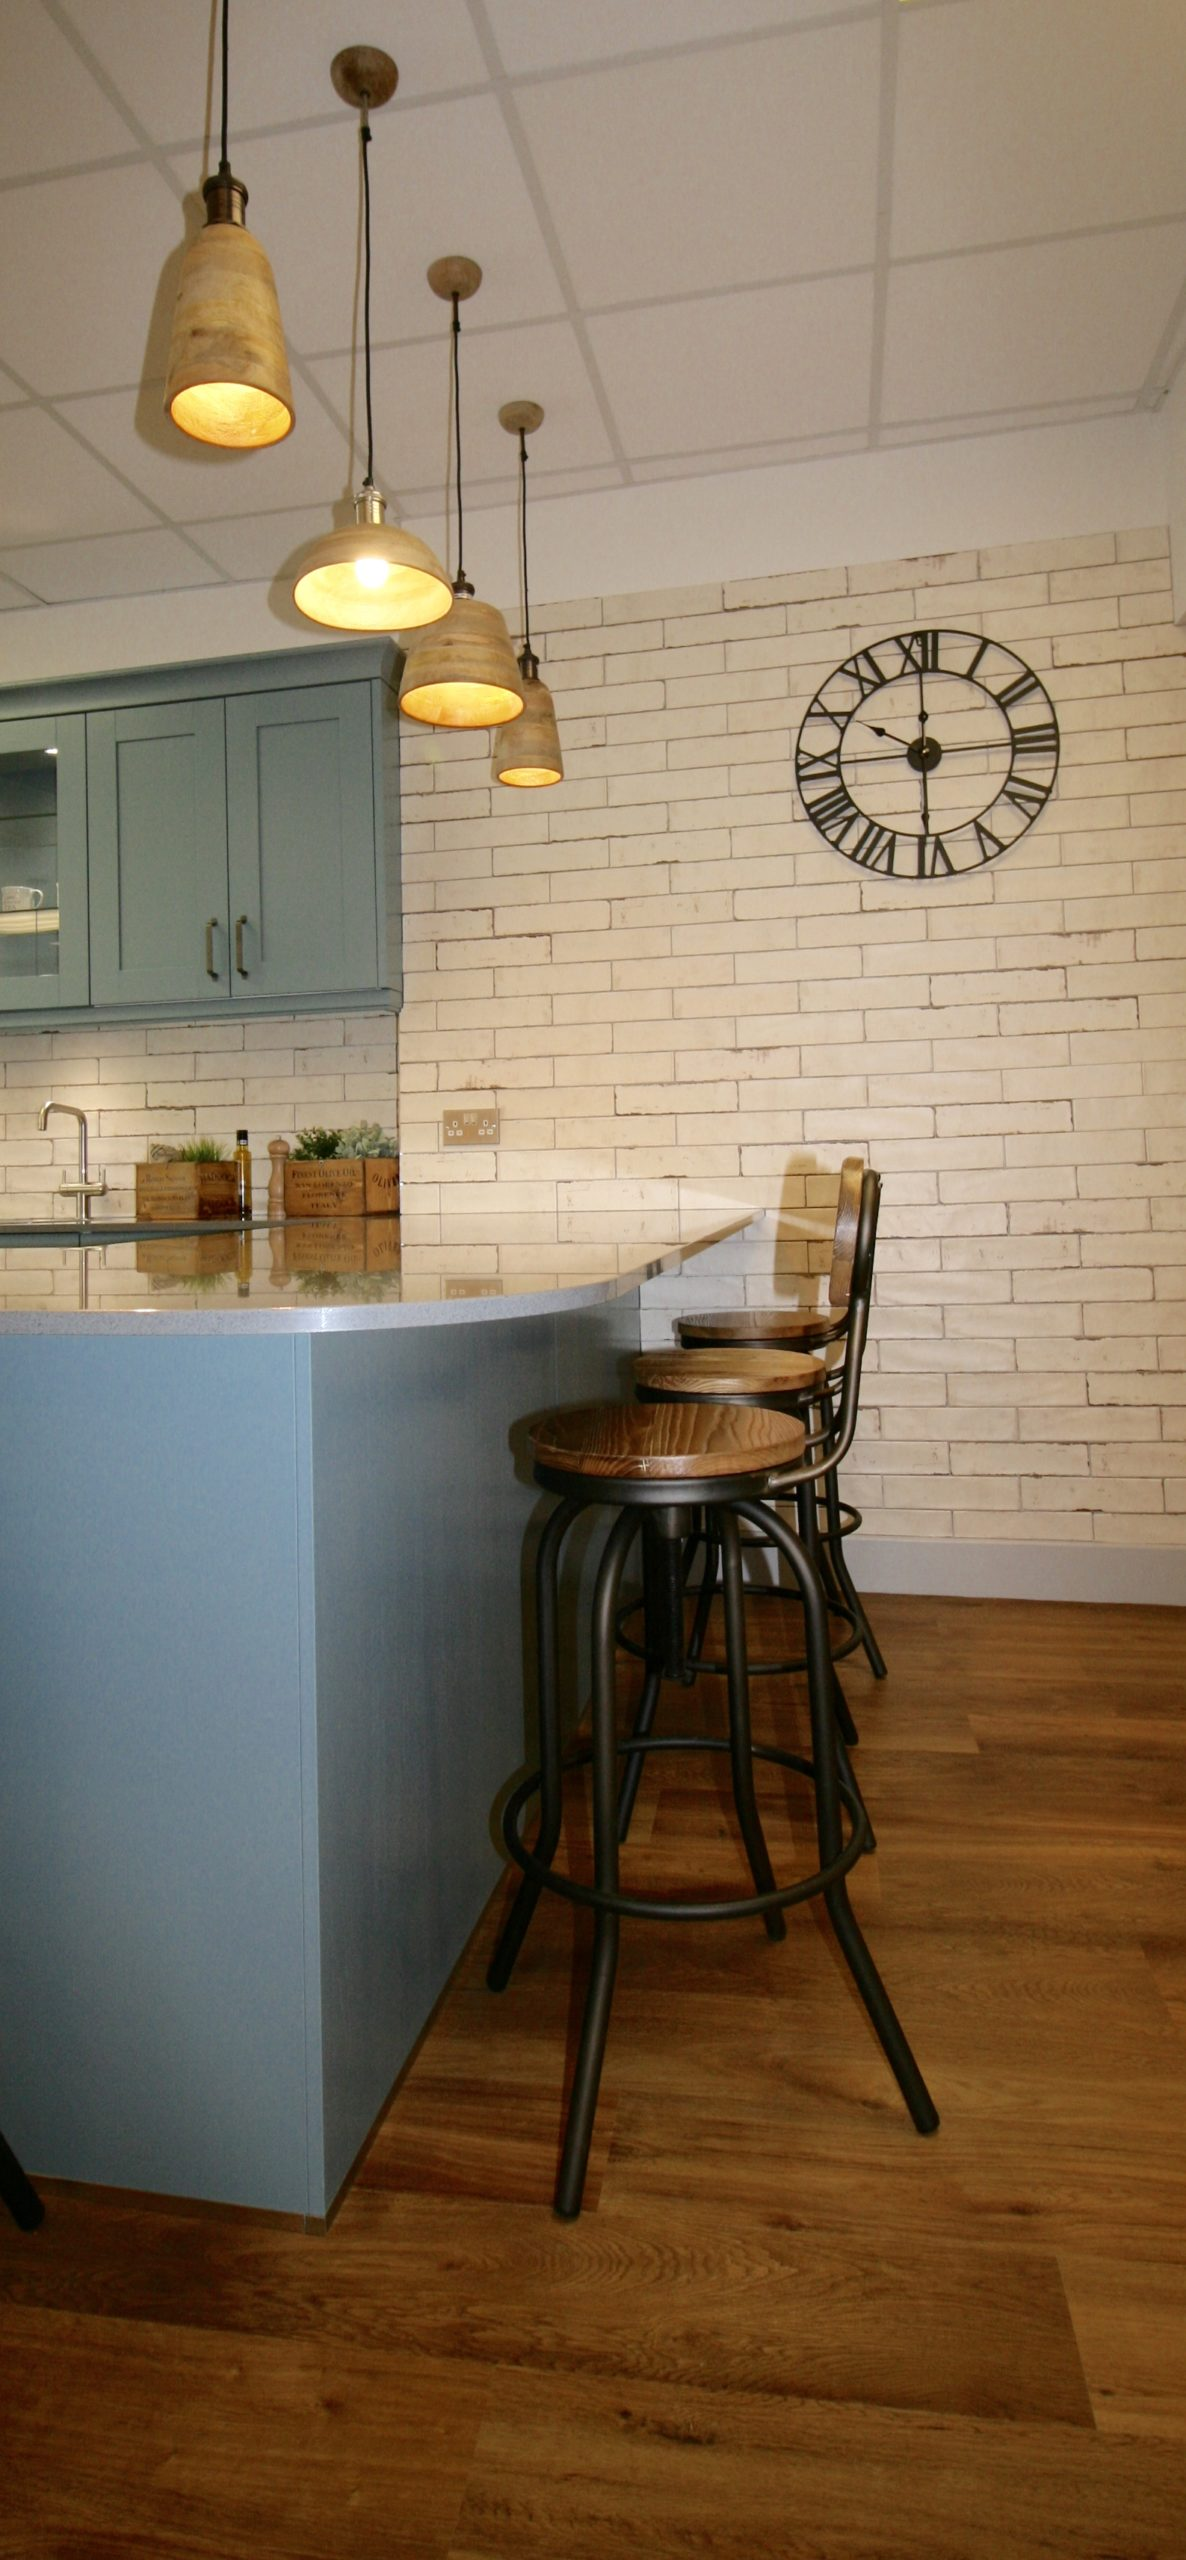 A mixture of vintage and industrial tiles, lighting, seating and accessories